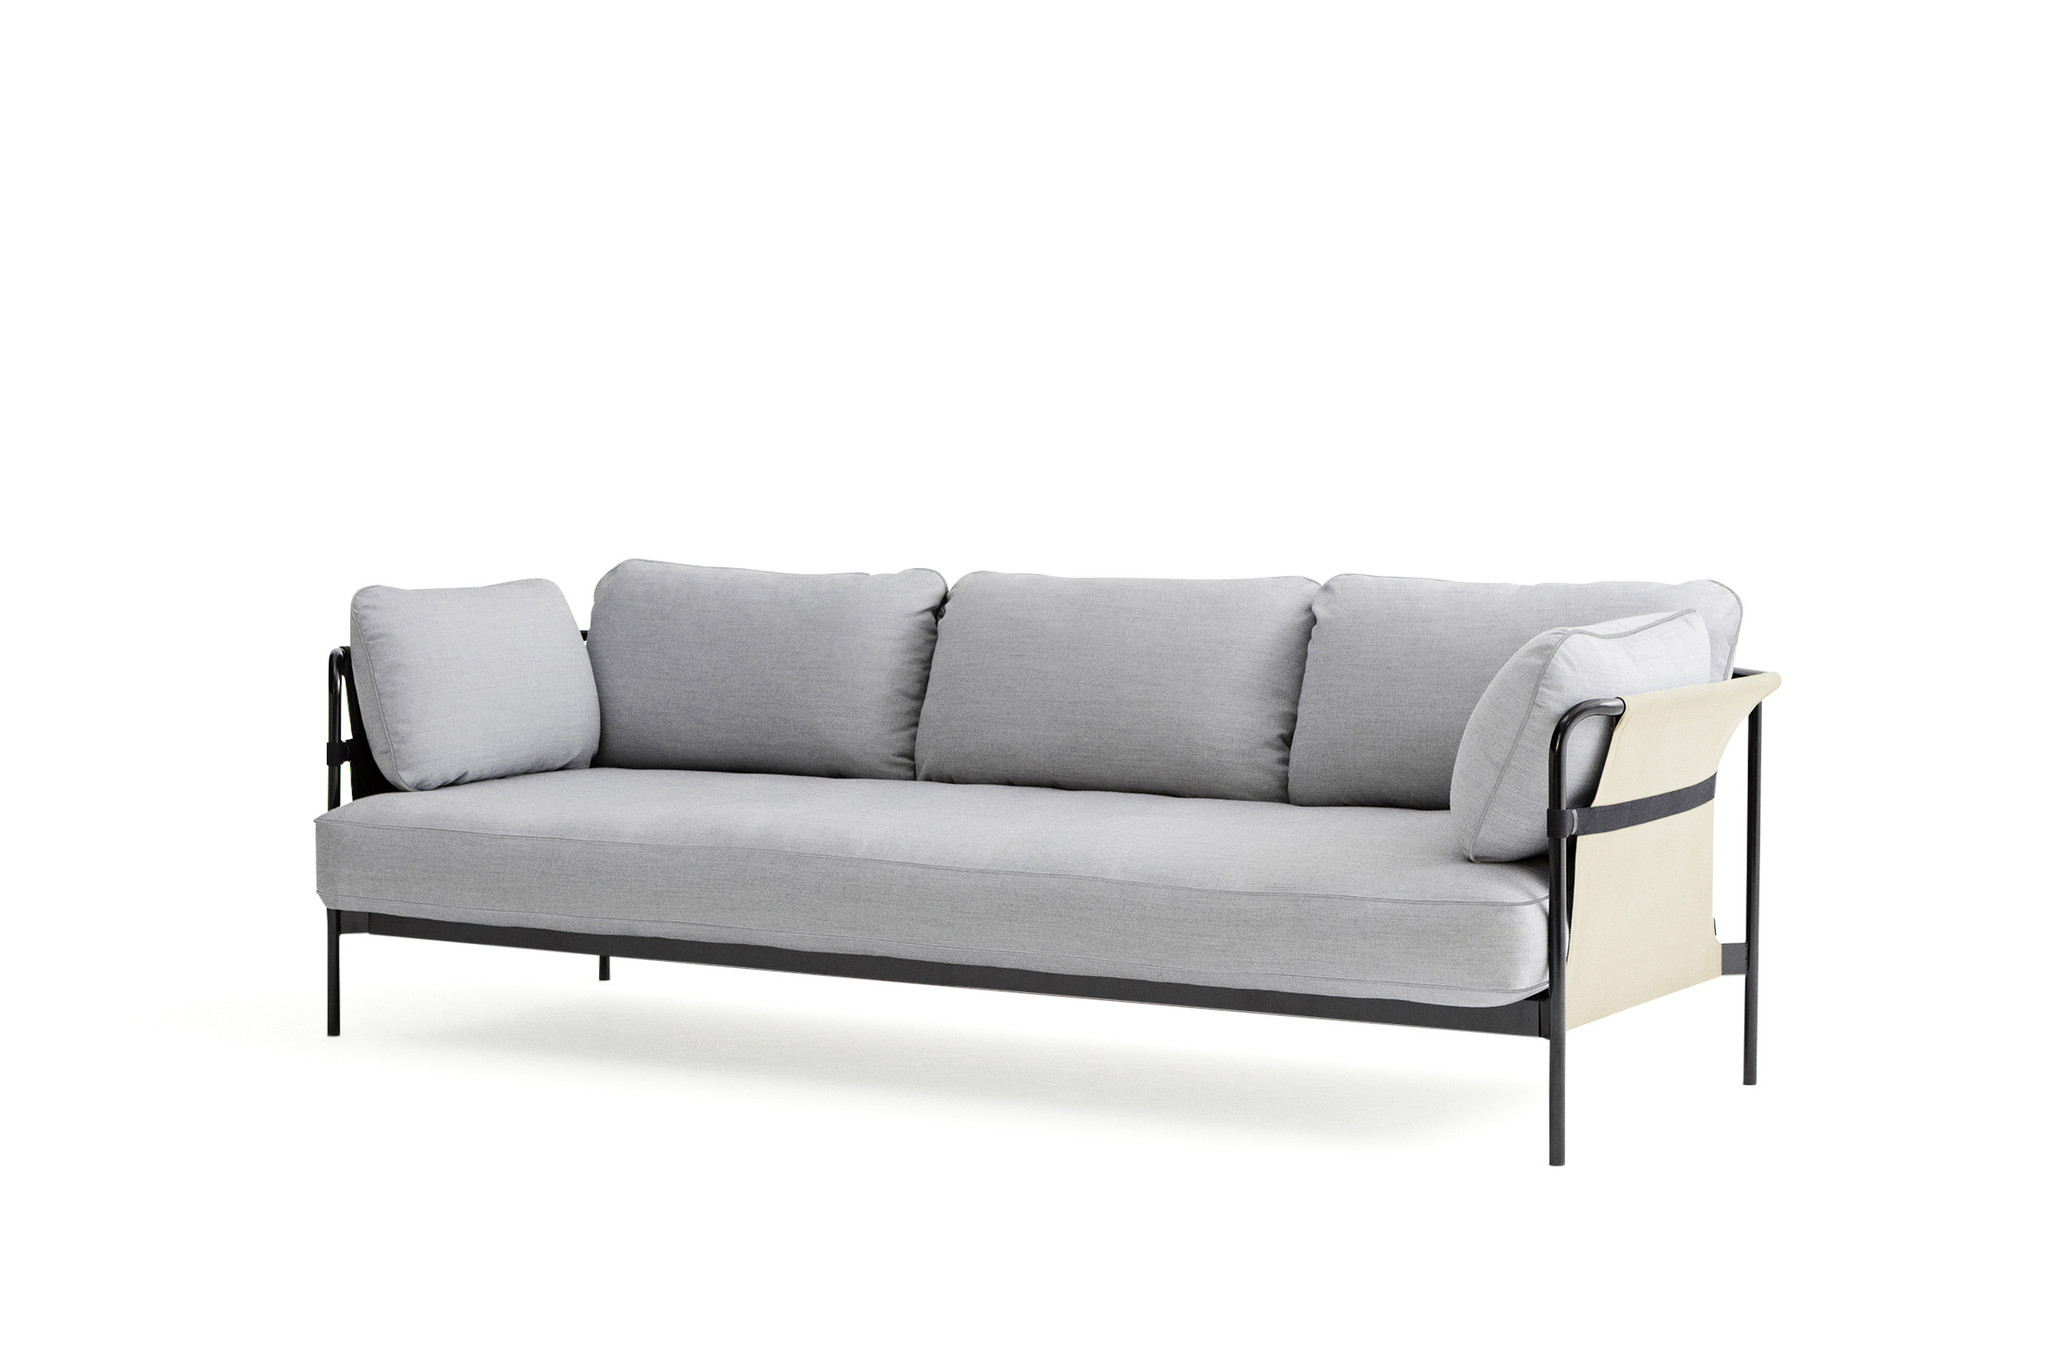 Can 3 Seater-8